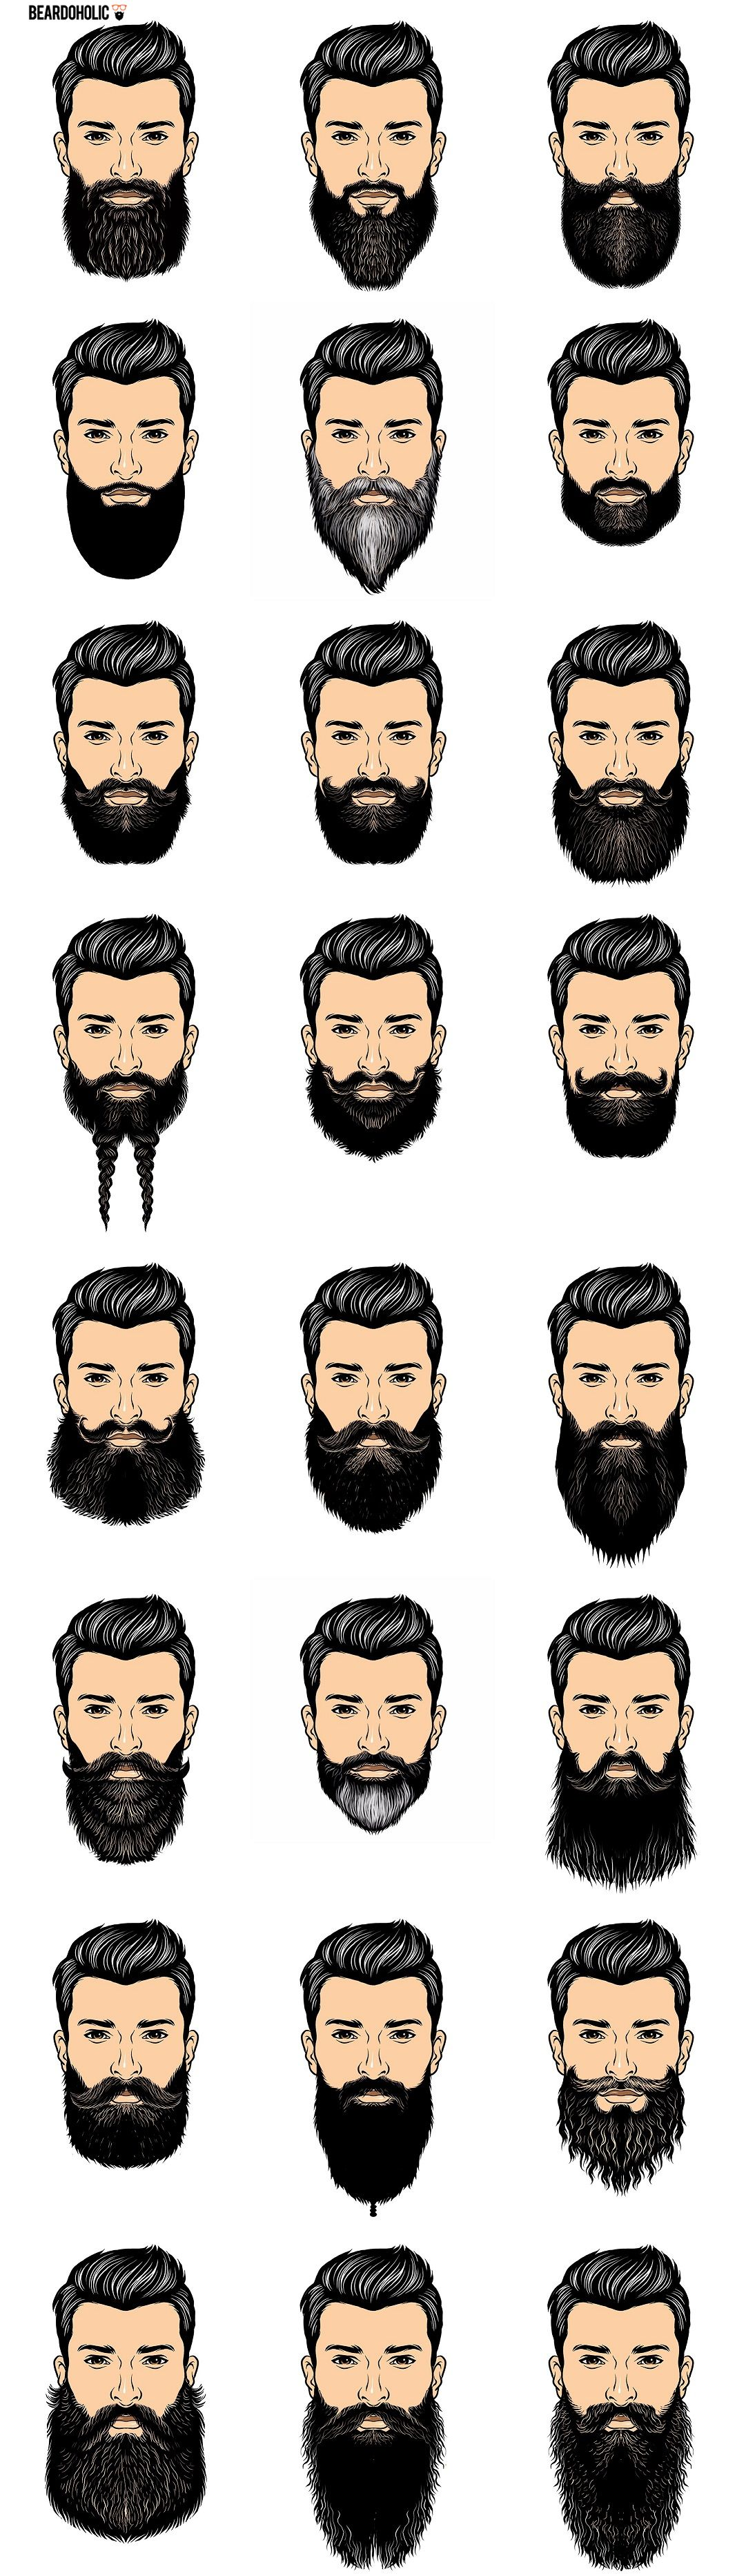 #beardfashion